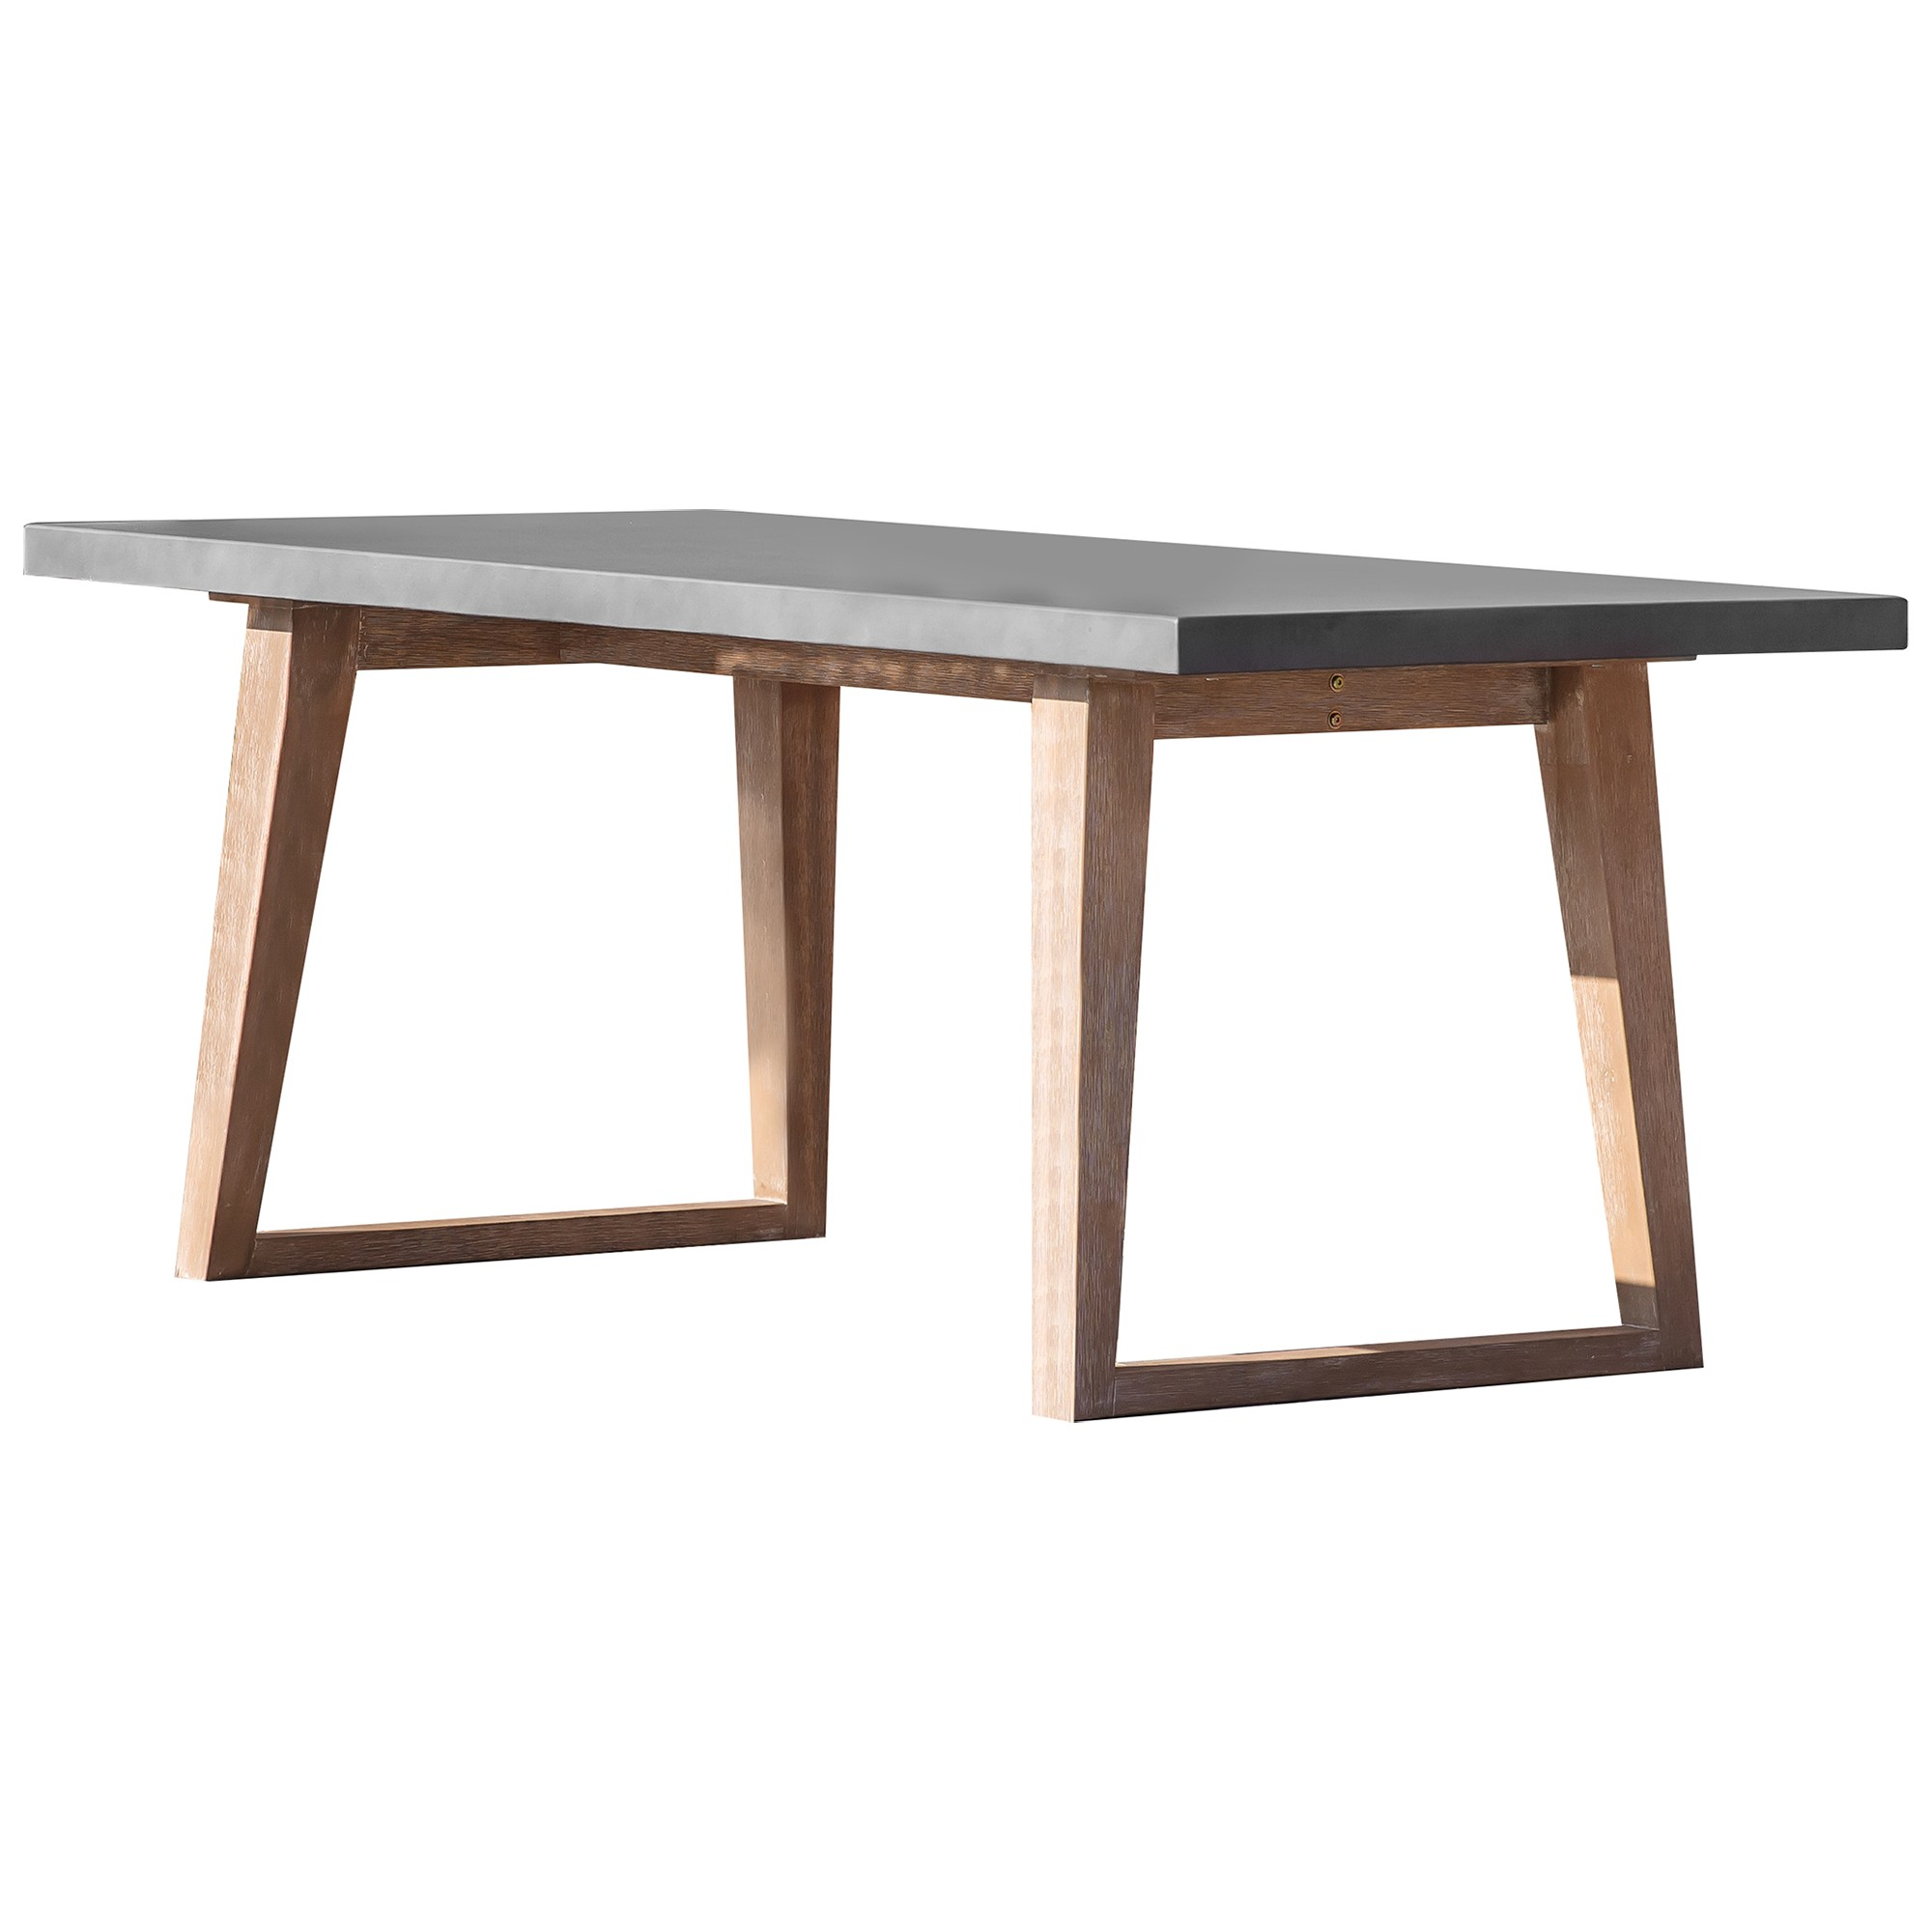 Maricca Concrete Top Outdoor Dining Table, 180cm